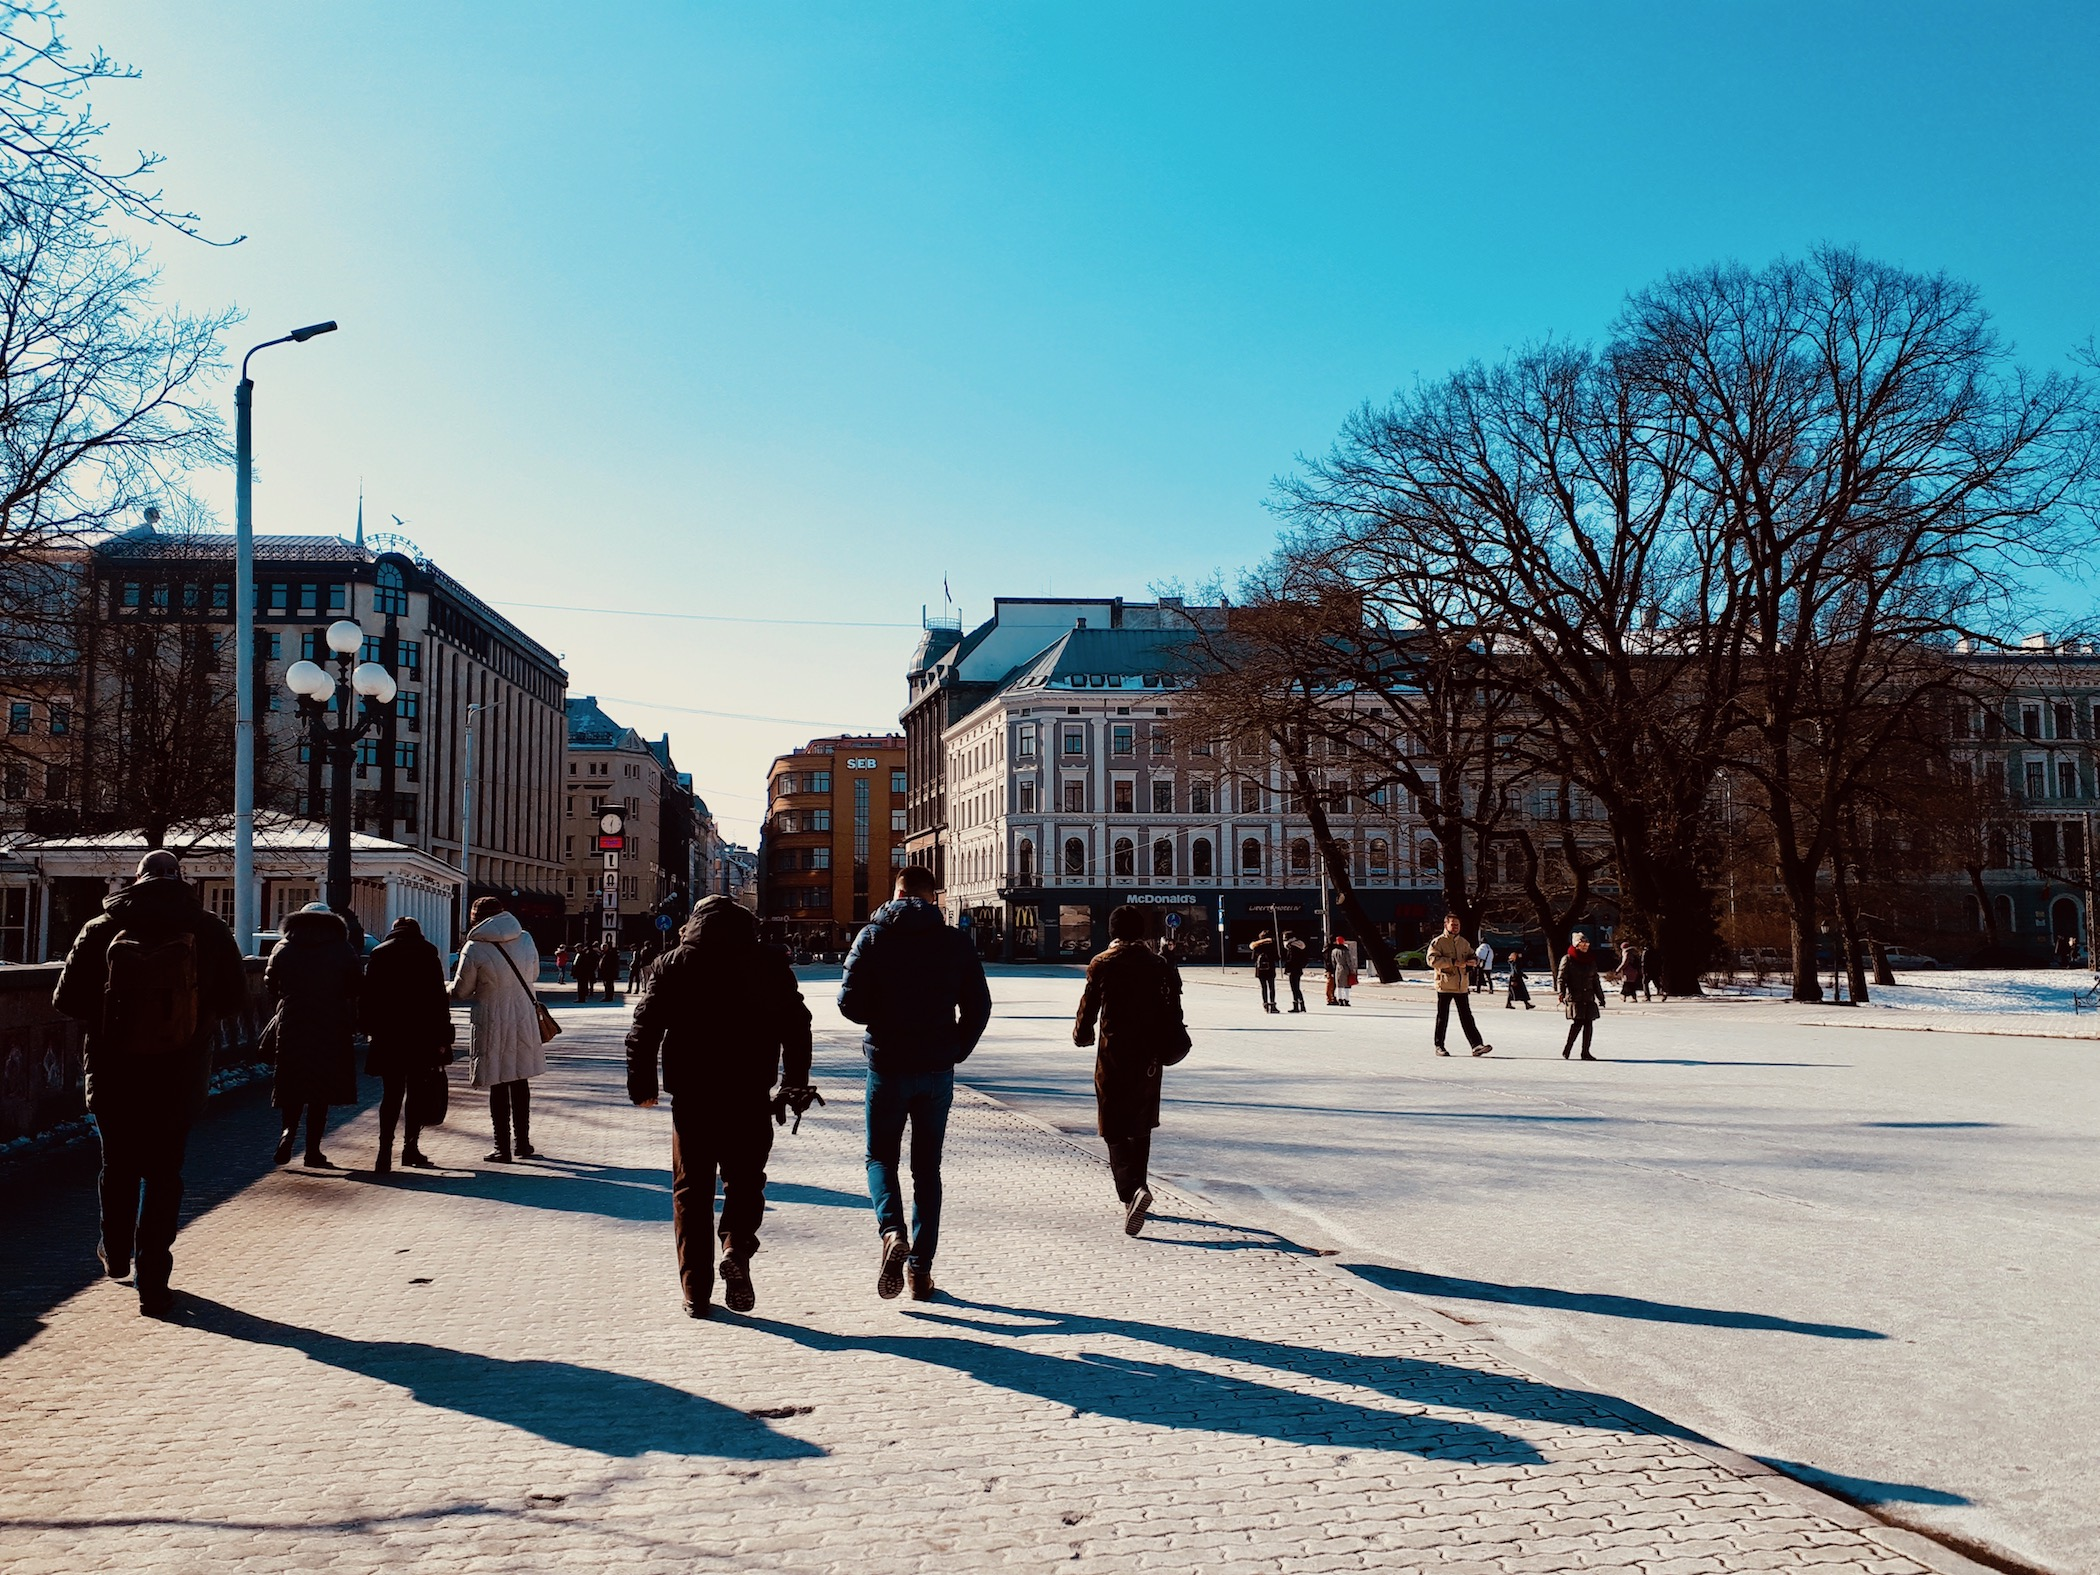 The Center neighborhood in Riga looks pretty magical in winter time!